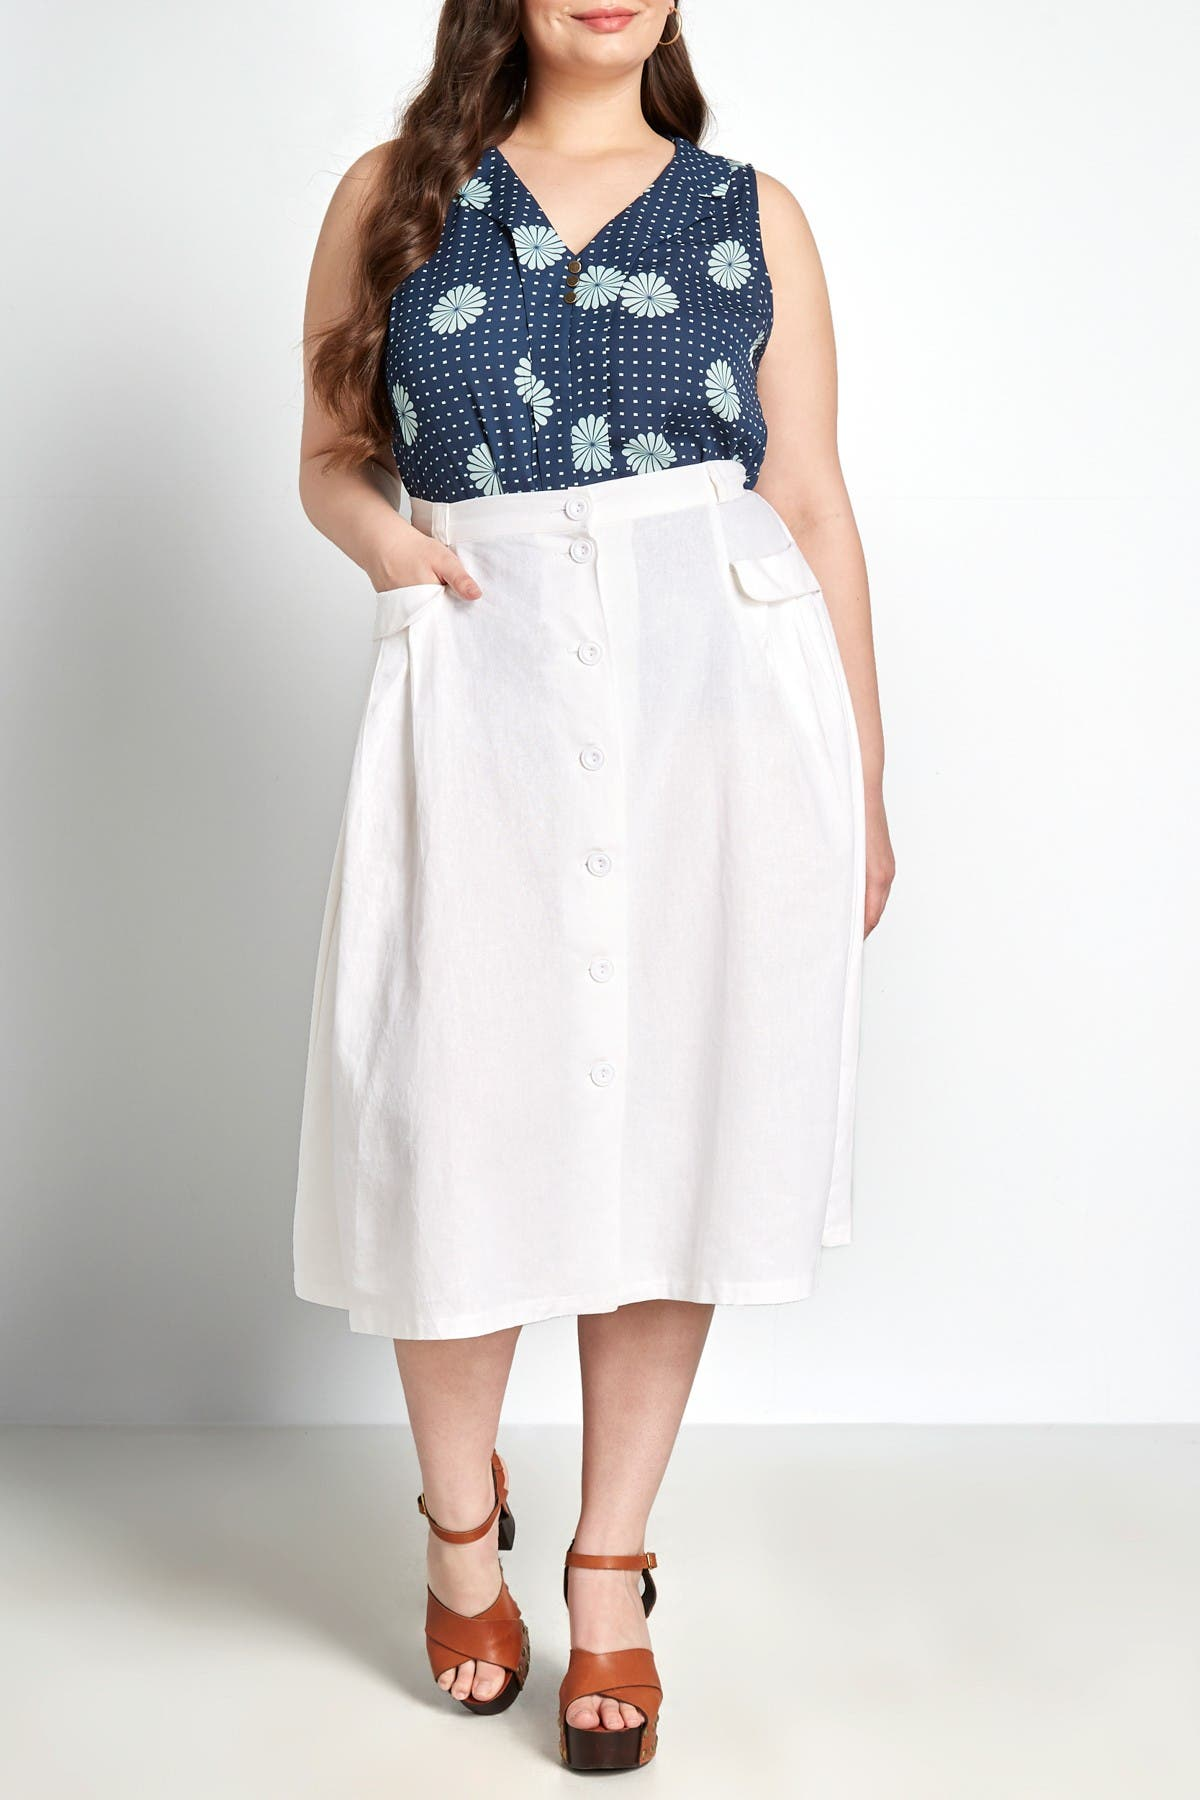 60s Skirts | 70s Hippie Skirts, Jumper Dresses MODCLOTH Effortless Feature Midi Skirt Size 26 - White at Nordstrom Rack $29.97 AT vintagedancer.com